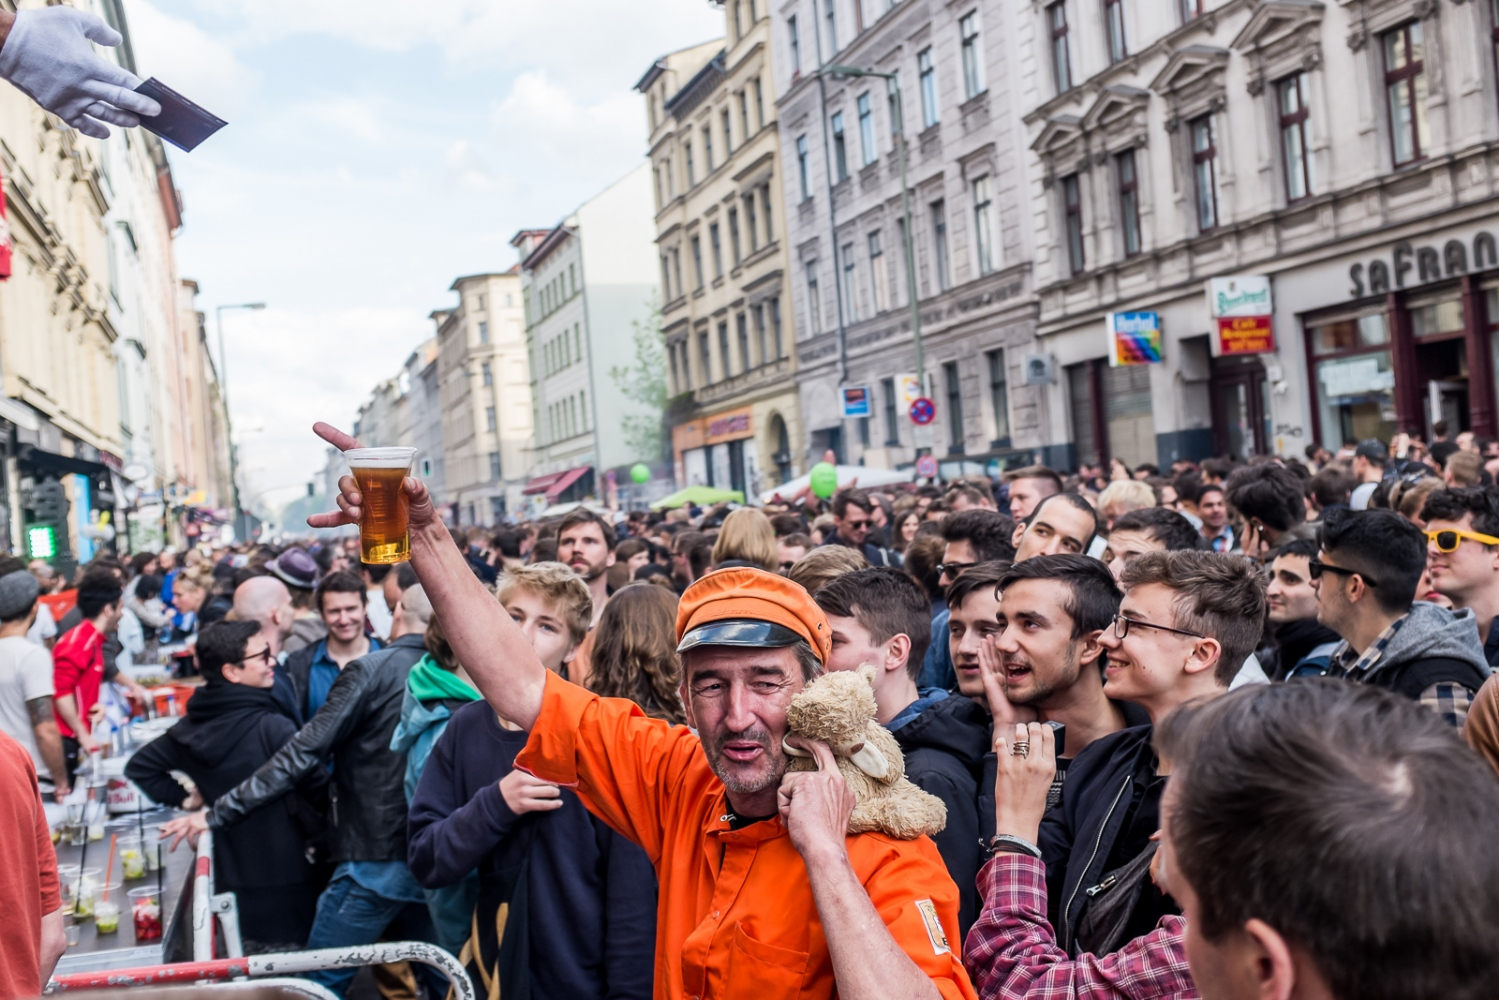 Berlin, GERMANY, May 1, 2015: May Day celebrations in Oranienstrasse, Kreuzberg. For an entire day most of Kreuzberg SO 36 district is cordoned off to allow people to mingle, drink, and dance through the streets during MyFest. In recent years, May Day has been rather peaceful. However, at times there are still riots, with leftwing youth throwing rocks and bottles, smashing windows, setting cars on fire, and getting into fights with the police. The riots originated in May 1, 1987, when a fight between young autonomists who fought for anticapitalist change and the police first took place on a grand scale.